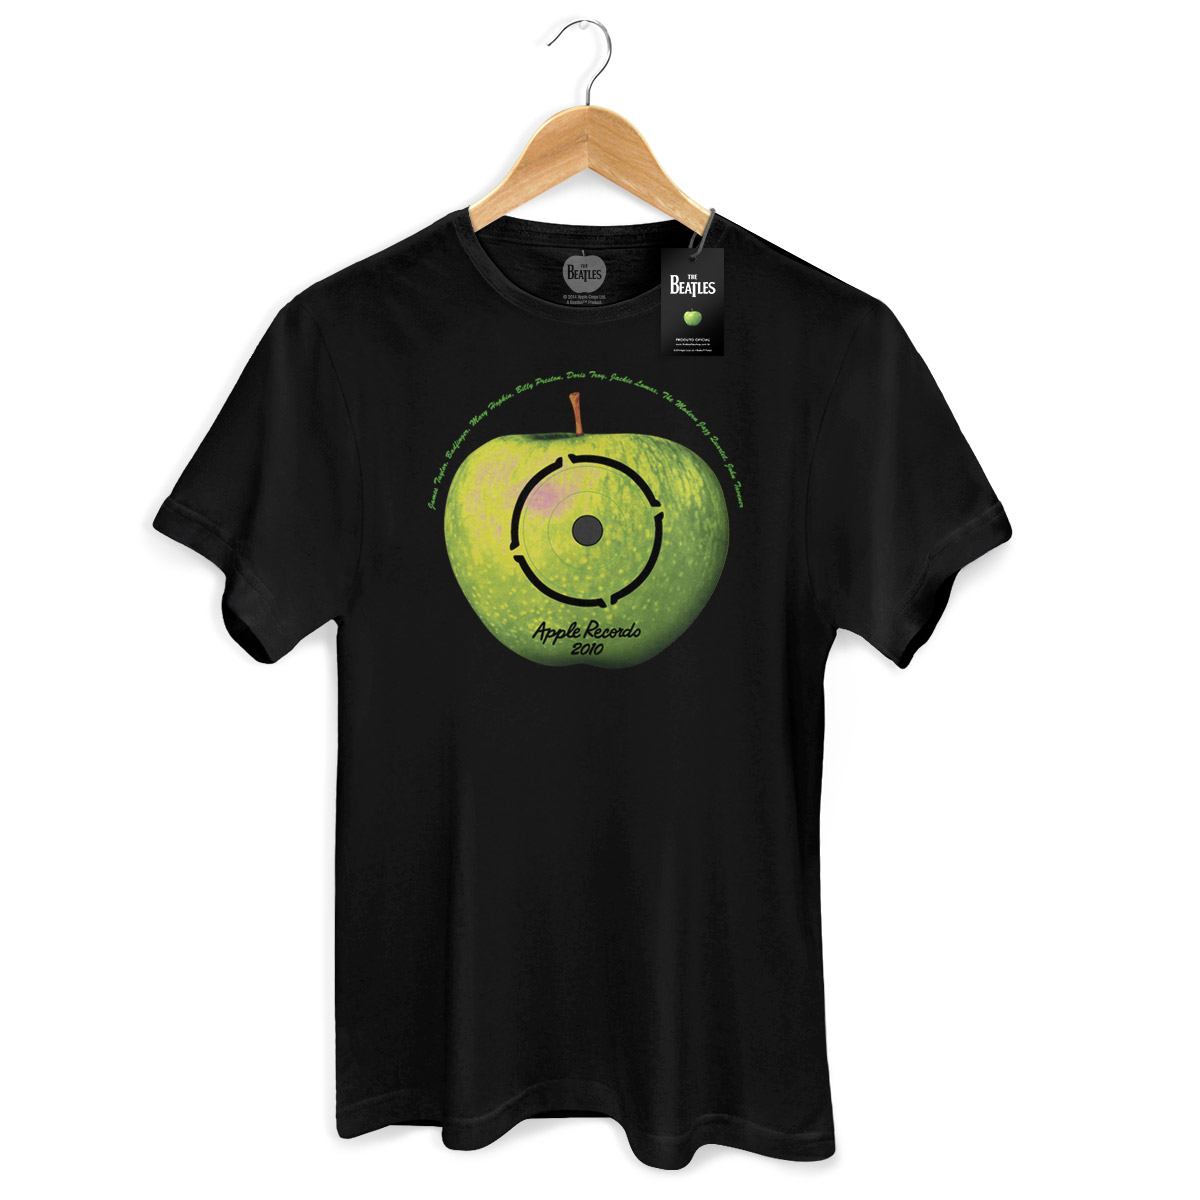 Camiseta Unissex The Beatles Apple LP Basic